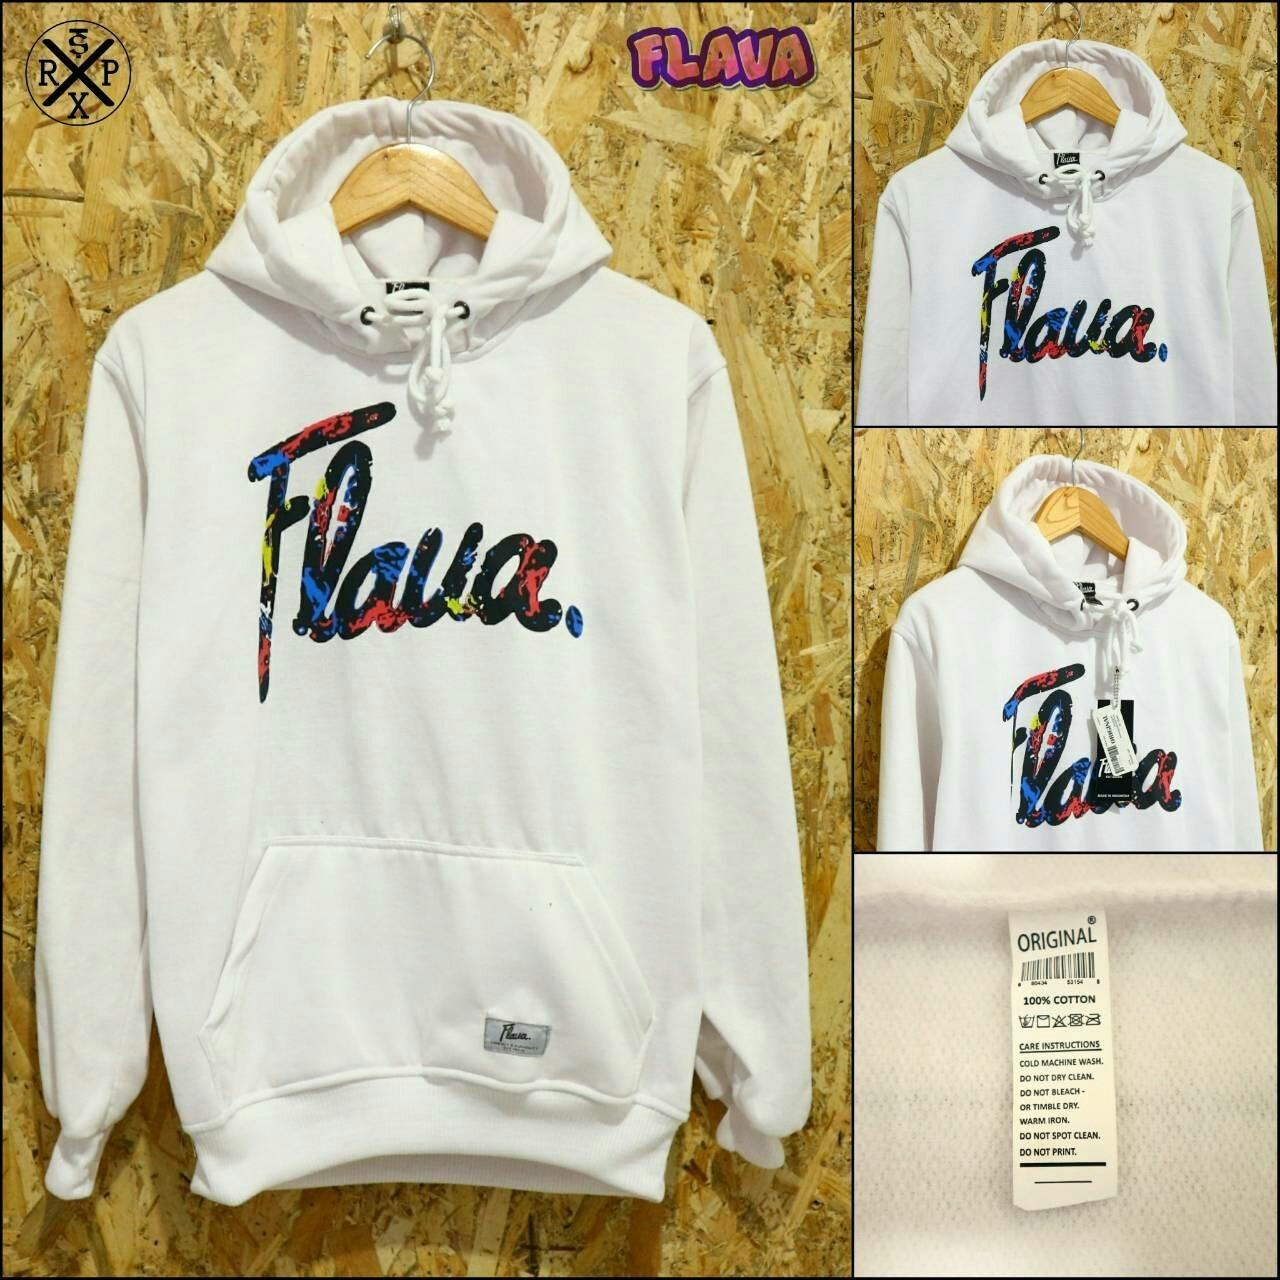 Wear Jaket Sweater Hoodie Flava White Di Indonesia